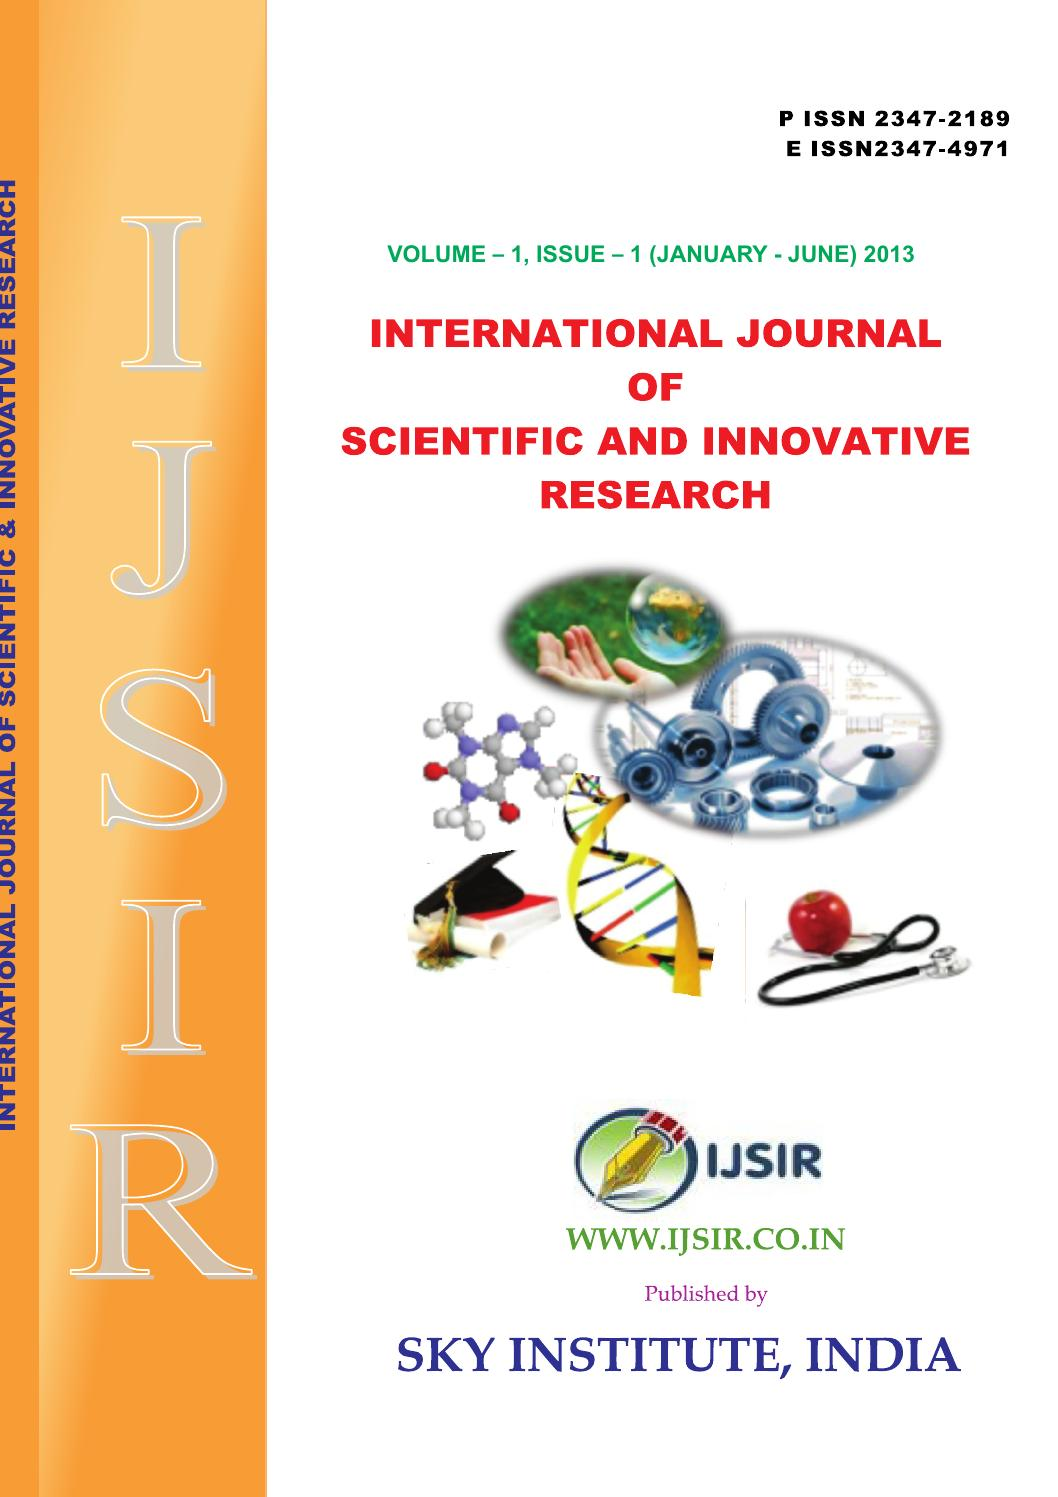 International Journal Of Scientific And Innovative Research Vol 2 Fig 1434 Two Typical Alternator Wiring Circuits Issue1 January June 2014 By Sky Insititute Issuu